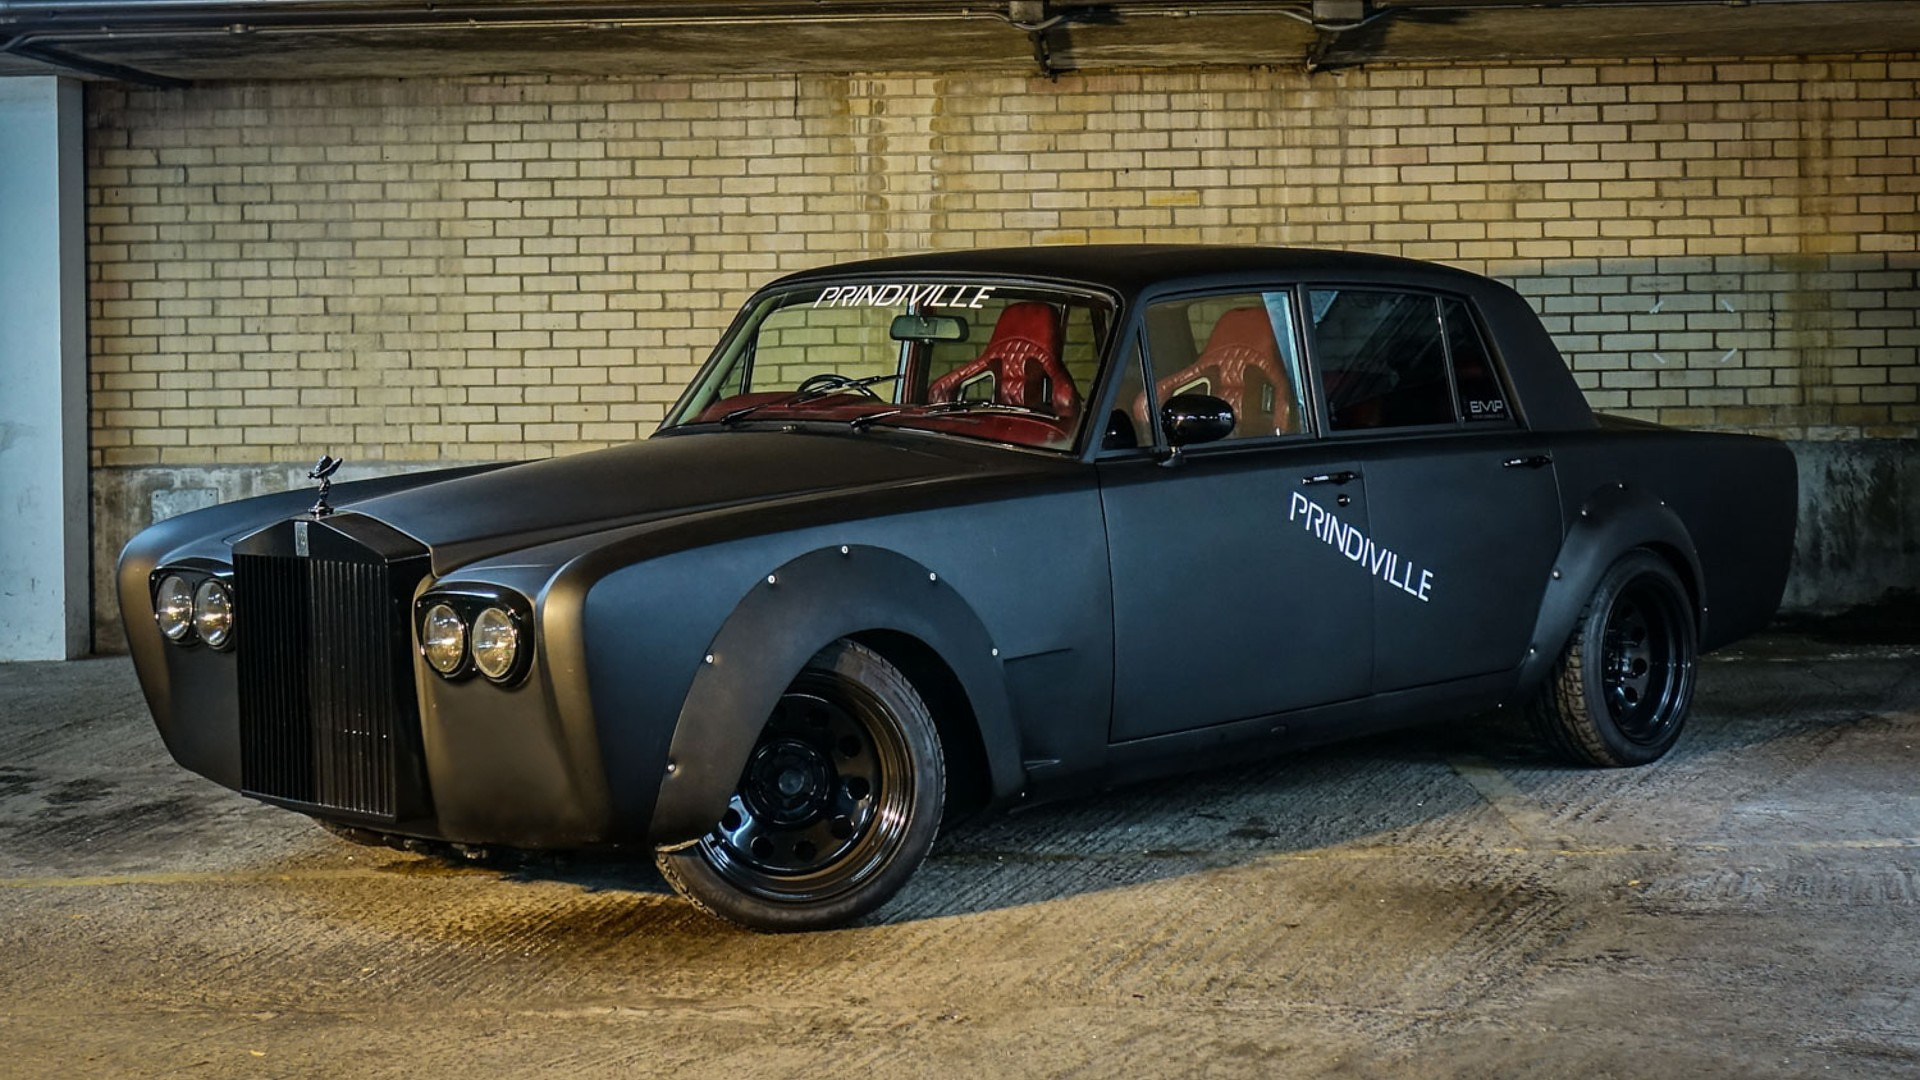 Evil Rolls Royce Silver Shadow Drift Car Selling For